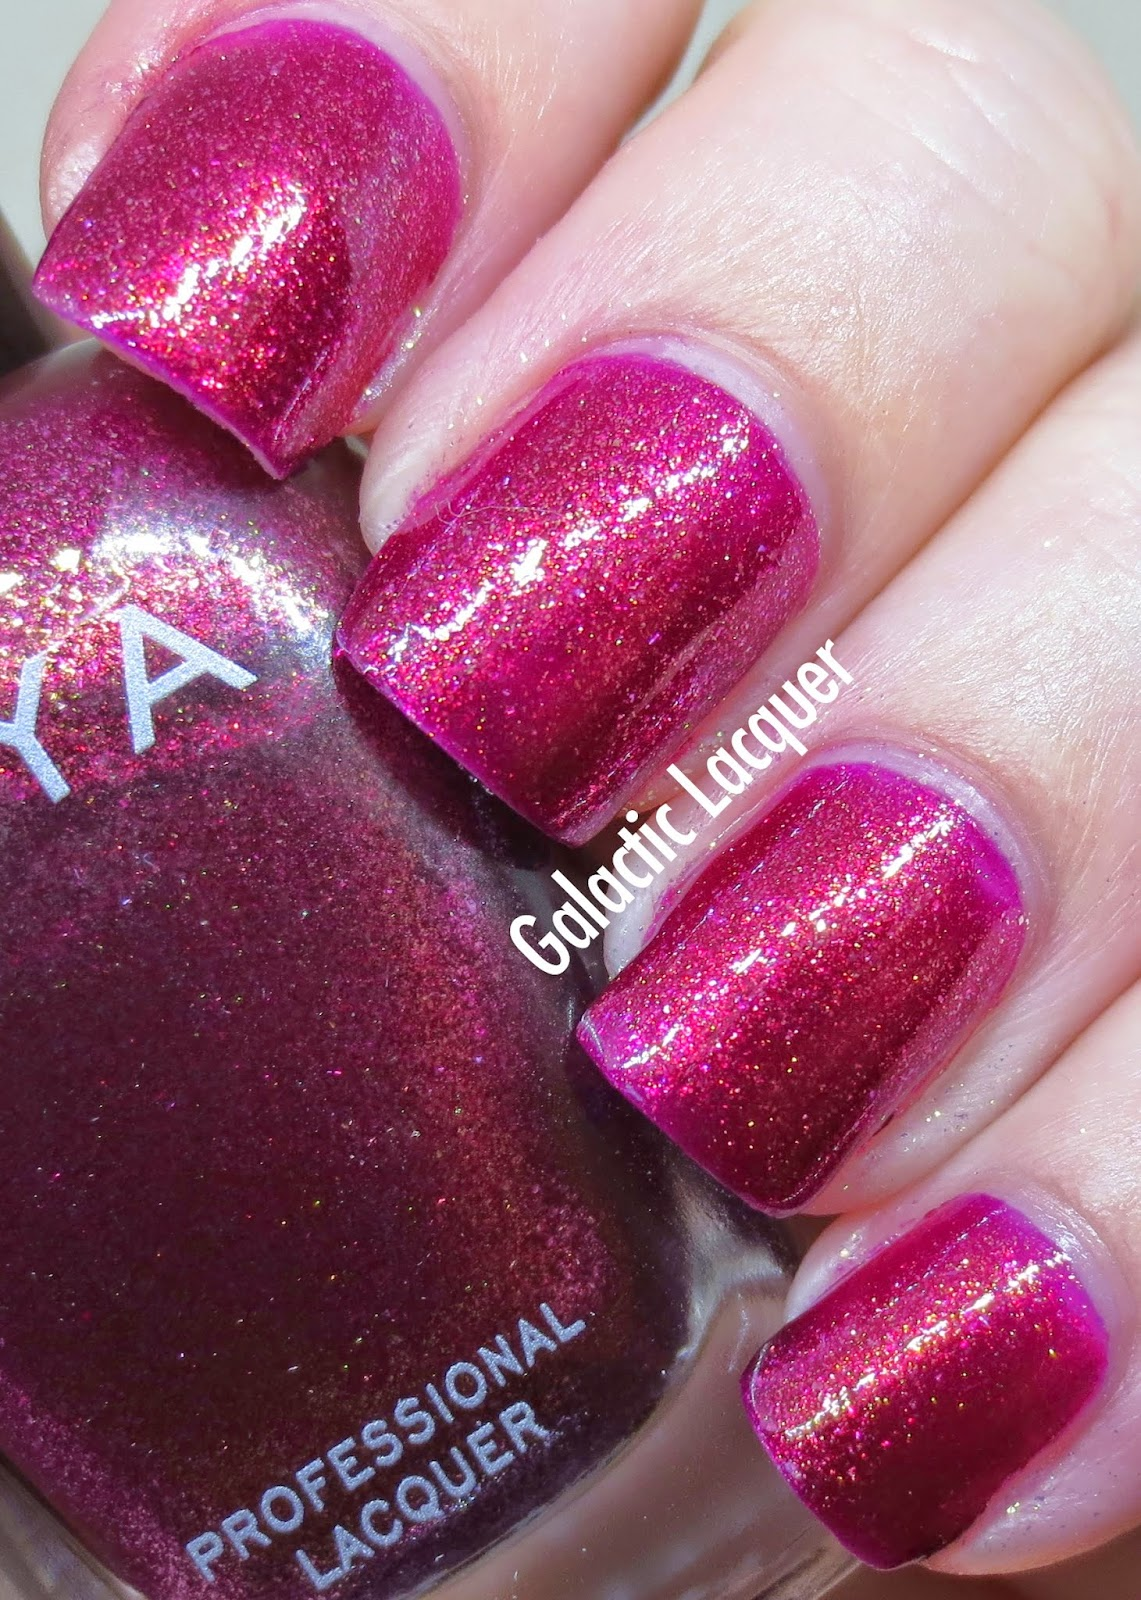 Galactic Lacquer: August 2014